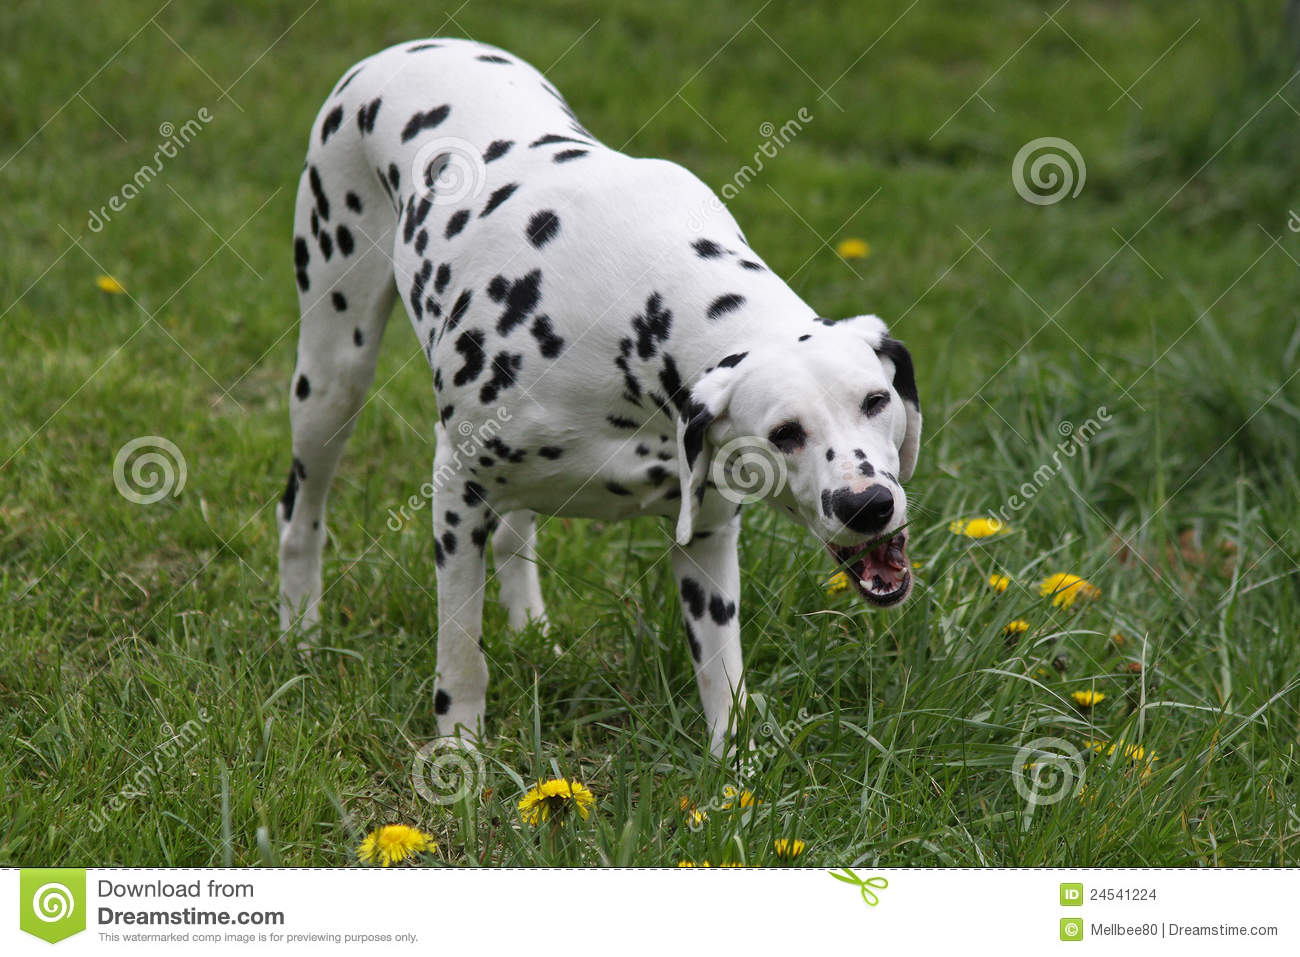 Dogs Eating Grass Seeds